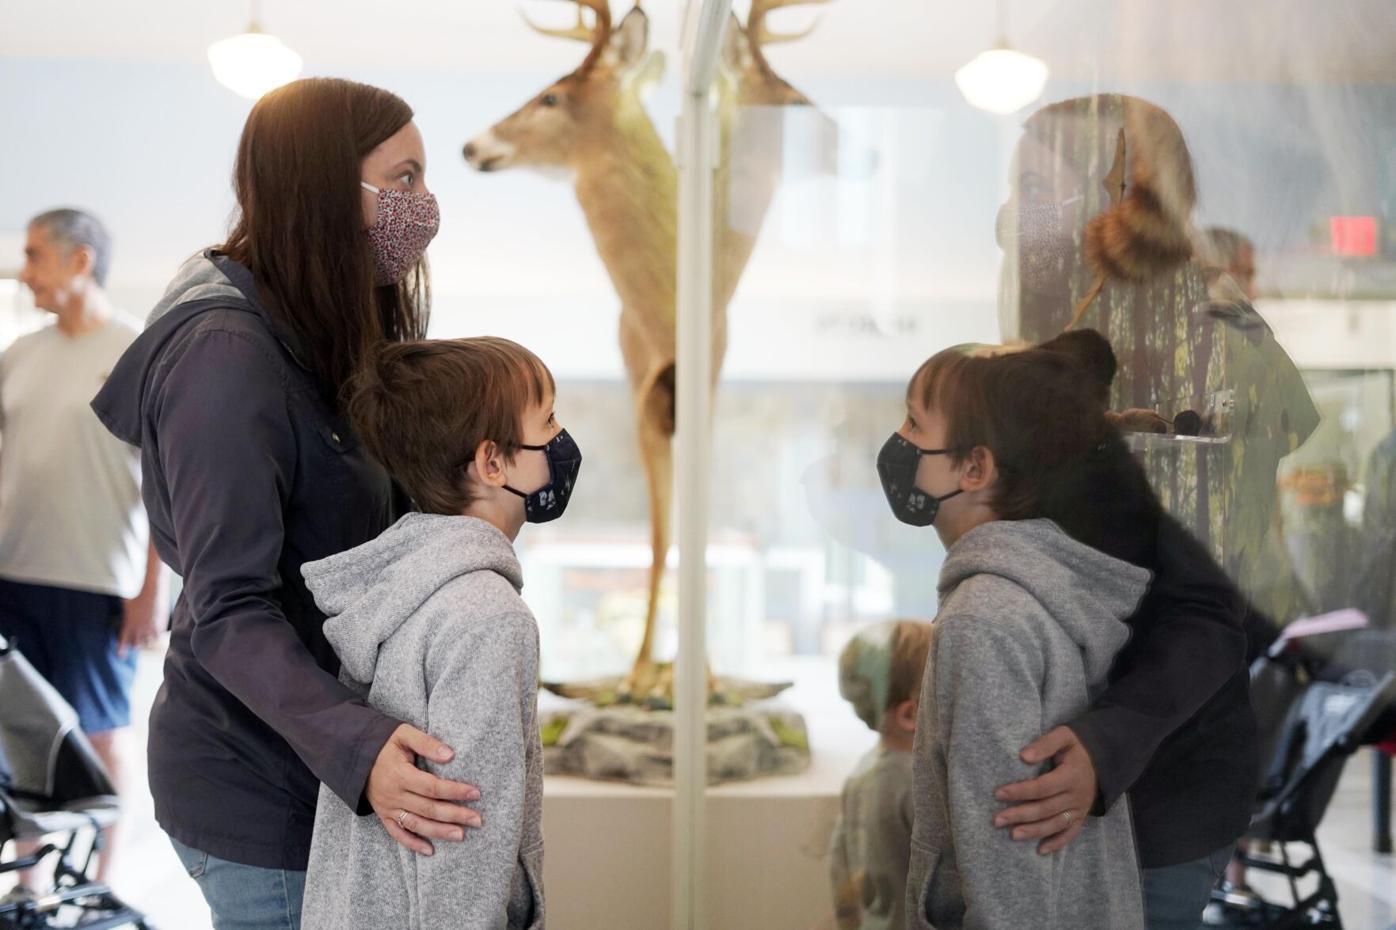 Family looks at sculpture